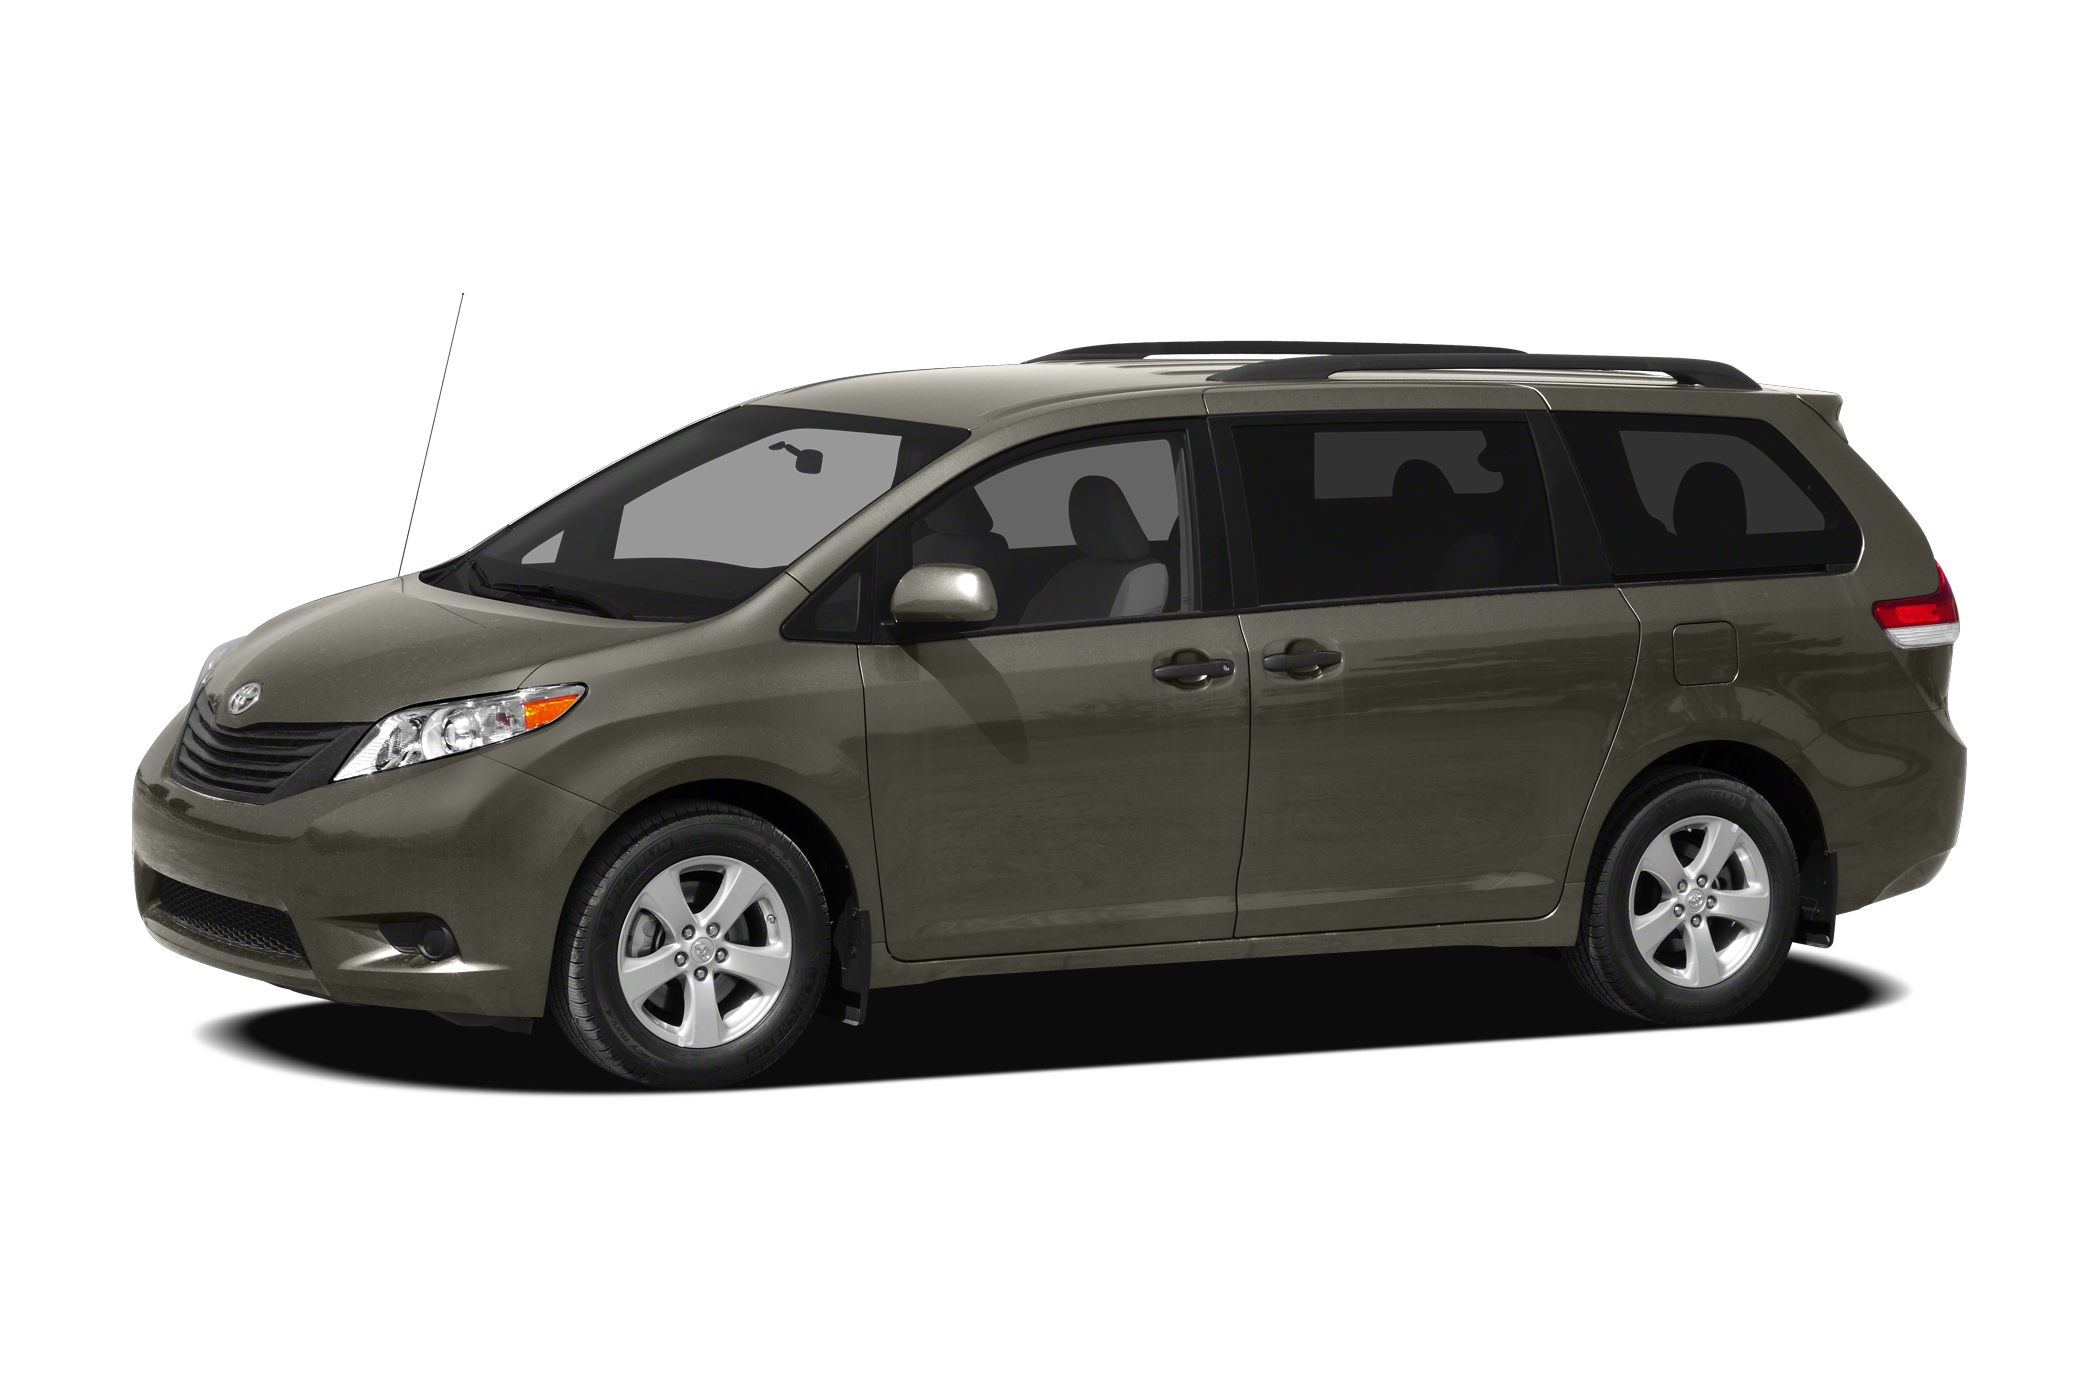 2012 Toyota Sienna 7-PASSENGER OUR PRICESYoure probably wondering why our prices are so much low